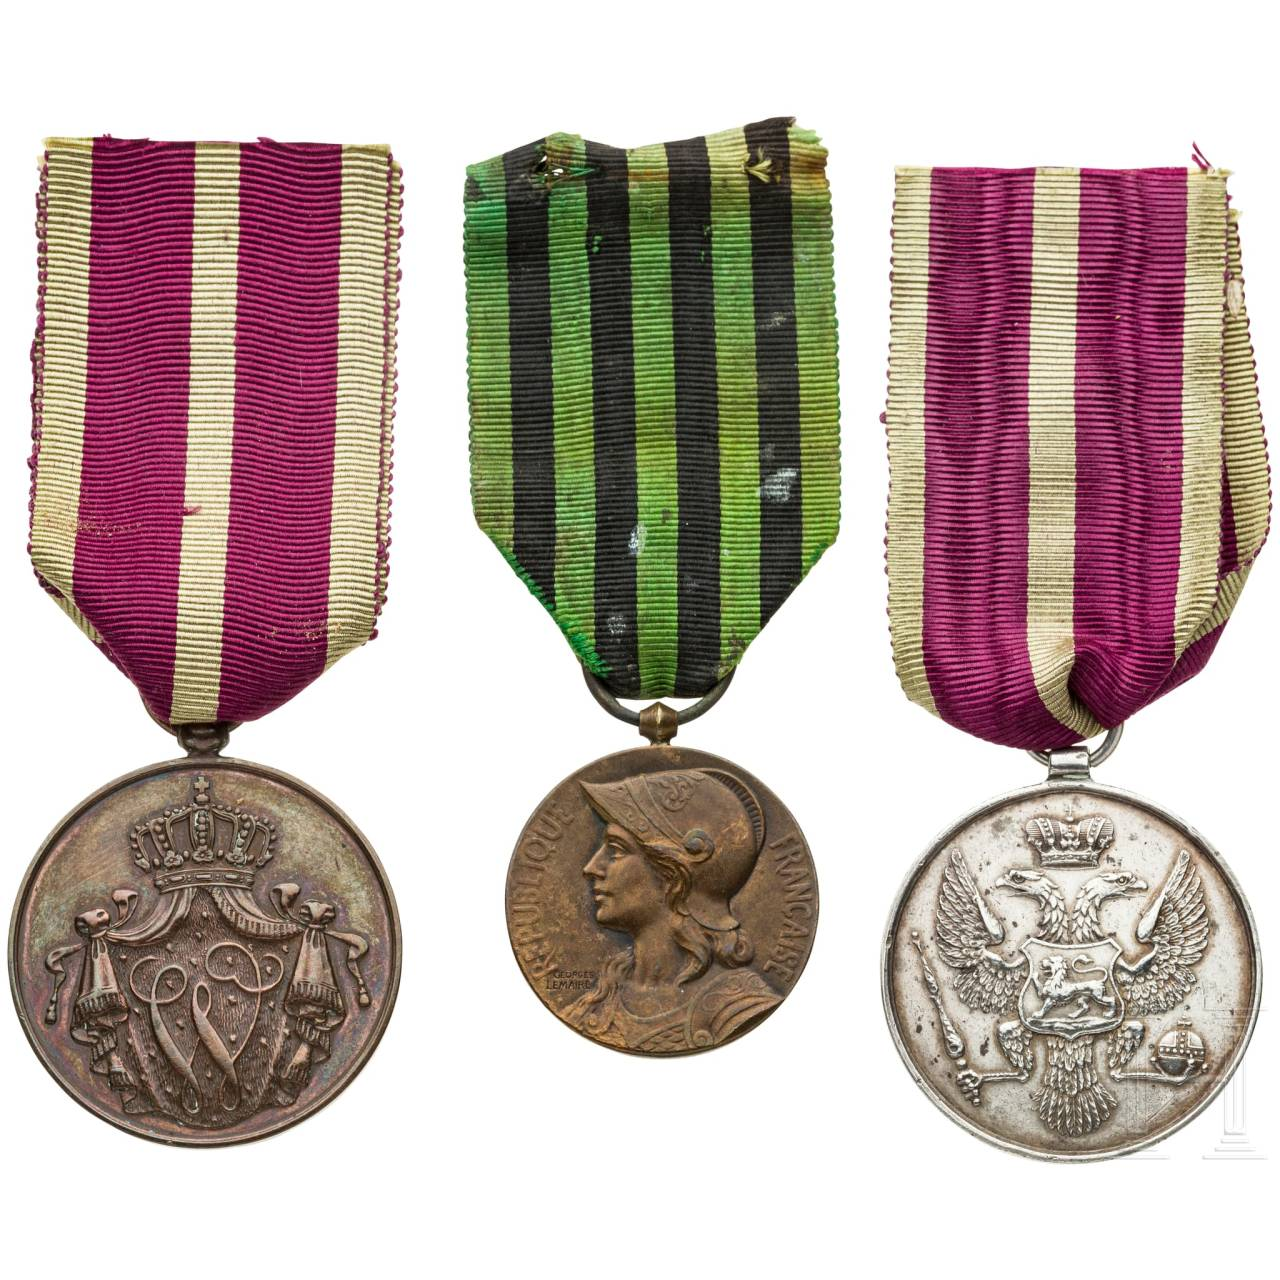 Three international medals, 19th and 20th centuries